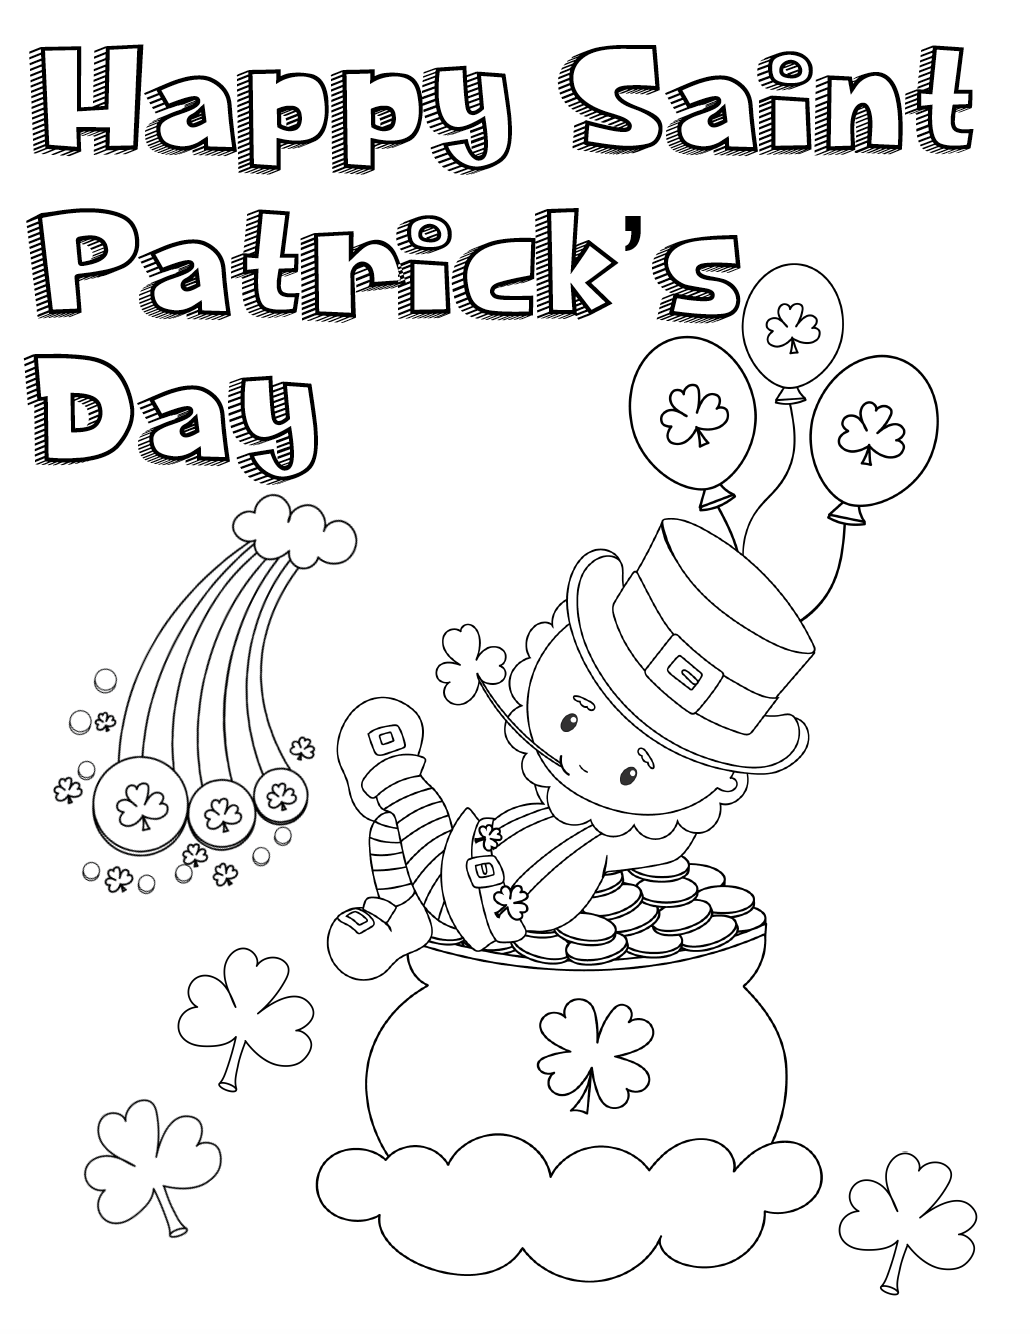 picture relating to Free Printable St Patrick Day Coloring Pages named No cost Printable St. Patricks Working day Coloring Webpages: 4 Plans!